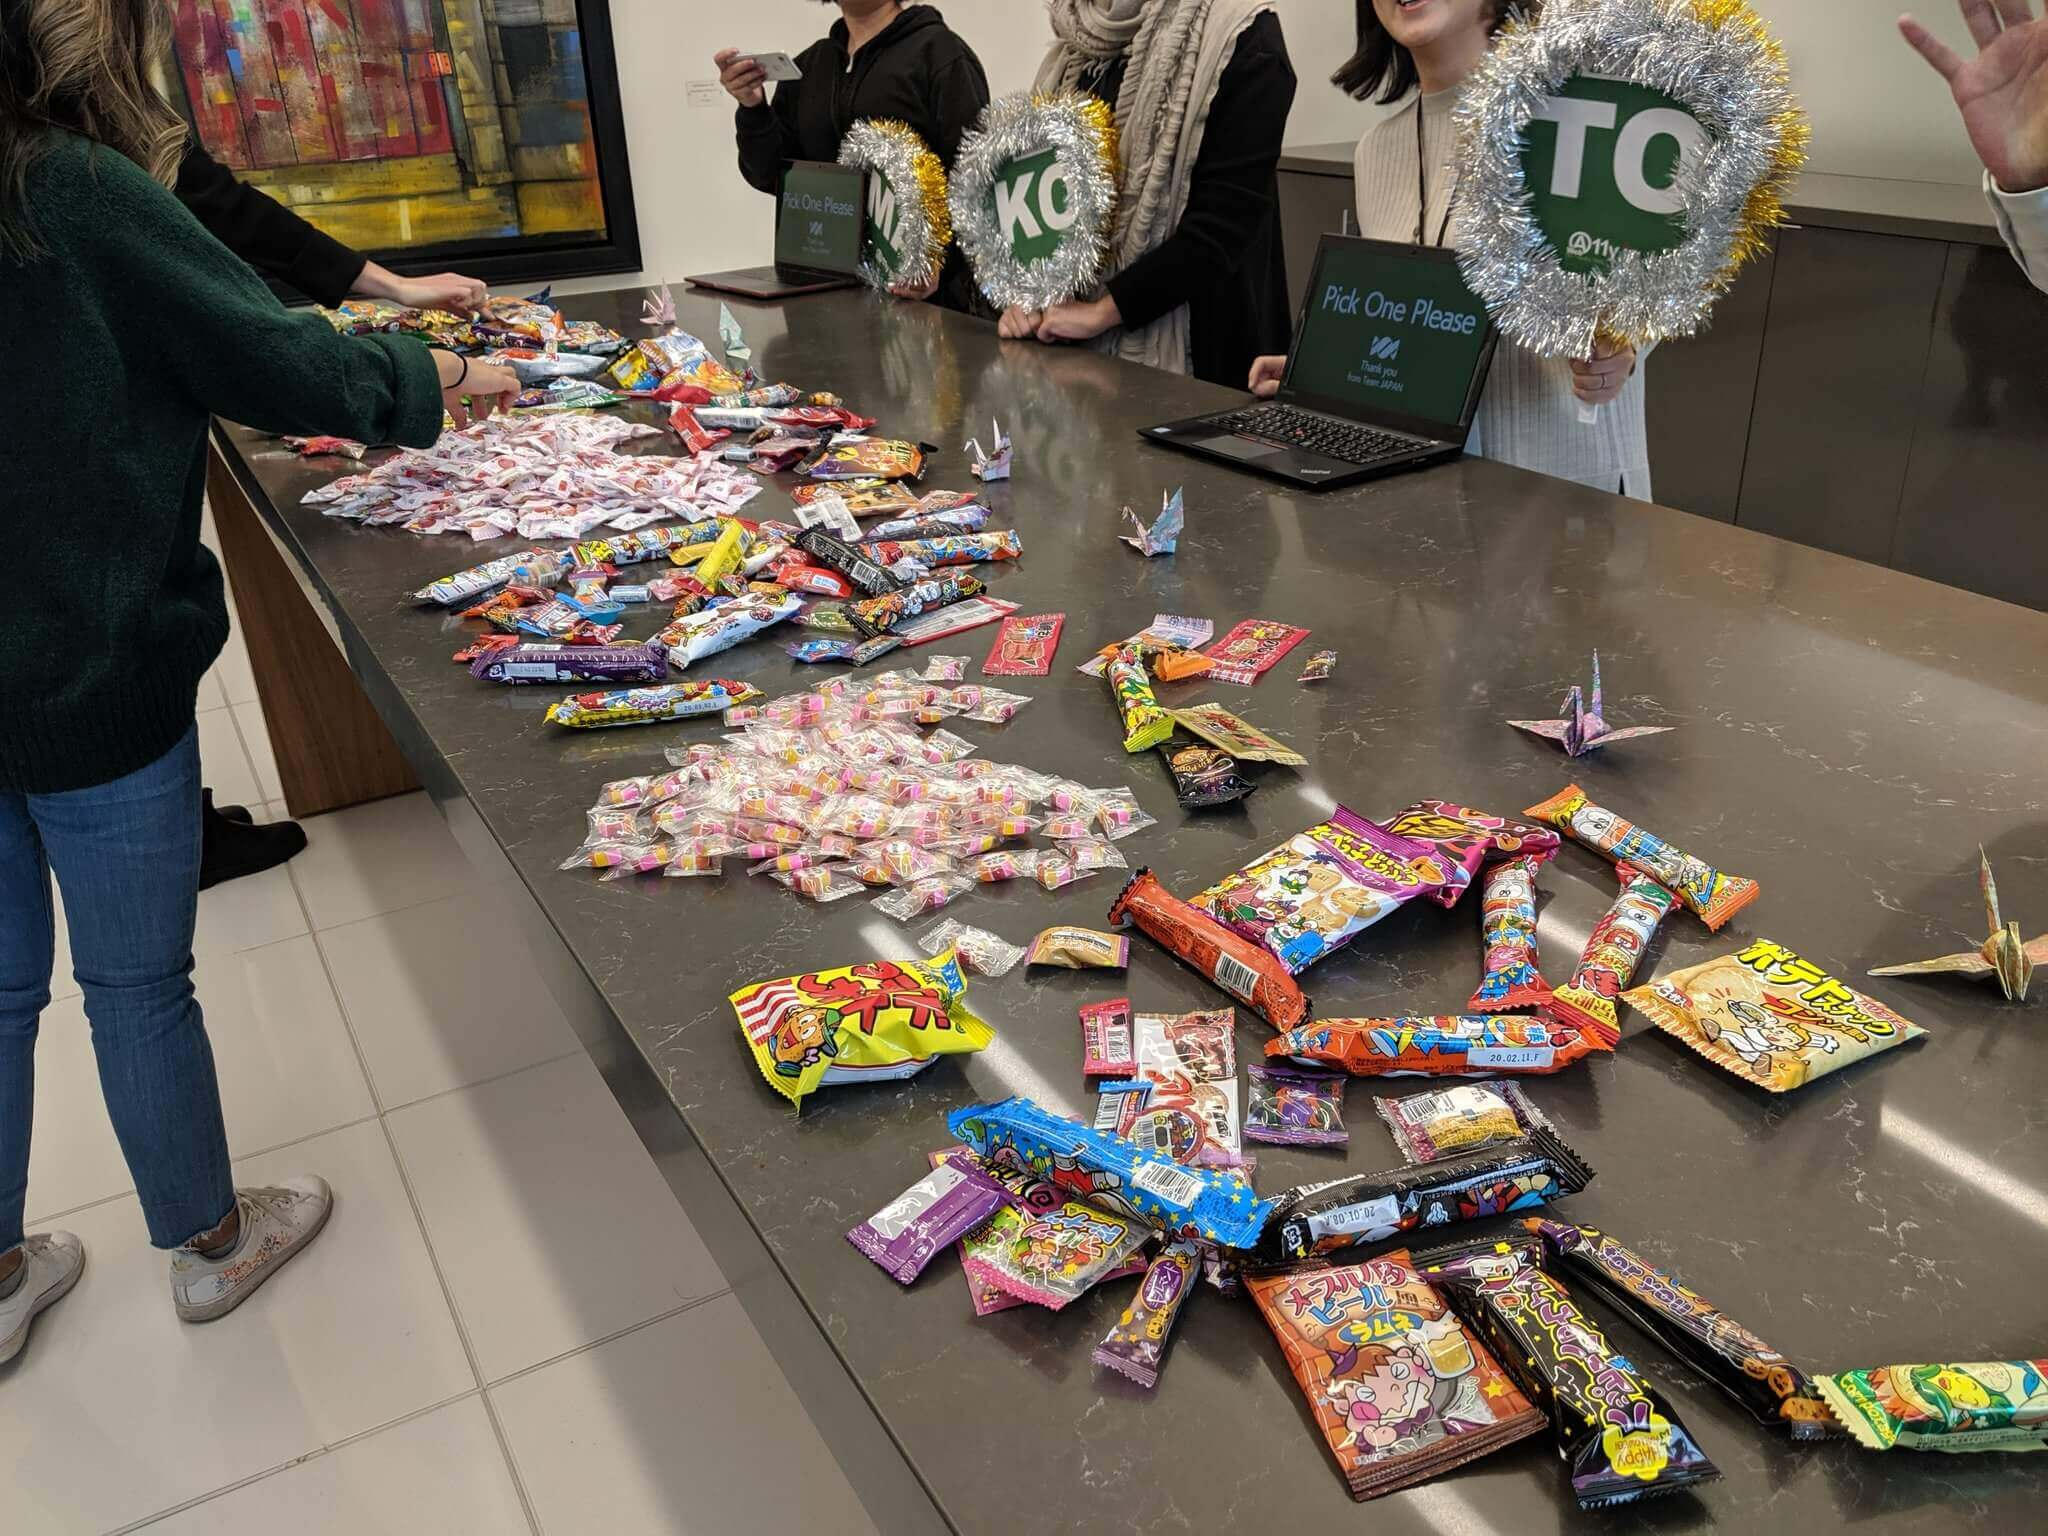 A long table covered with Japanese candies and a team from Japan standing behind it.